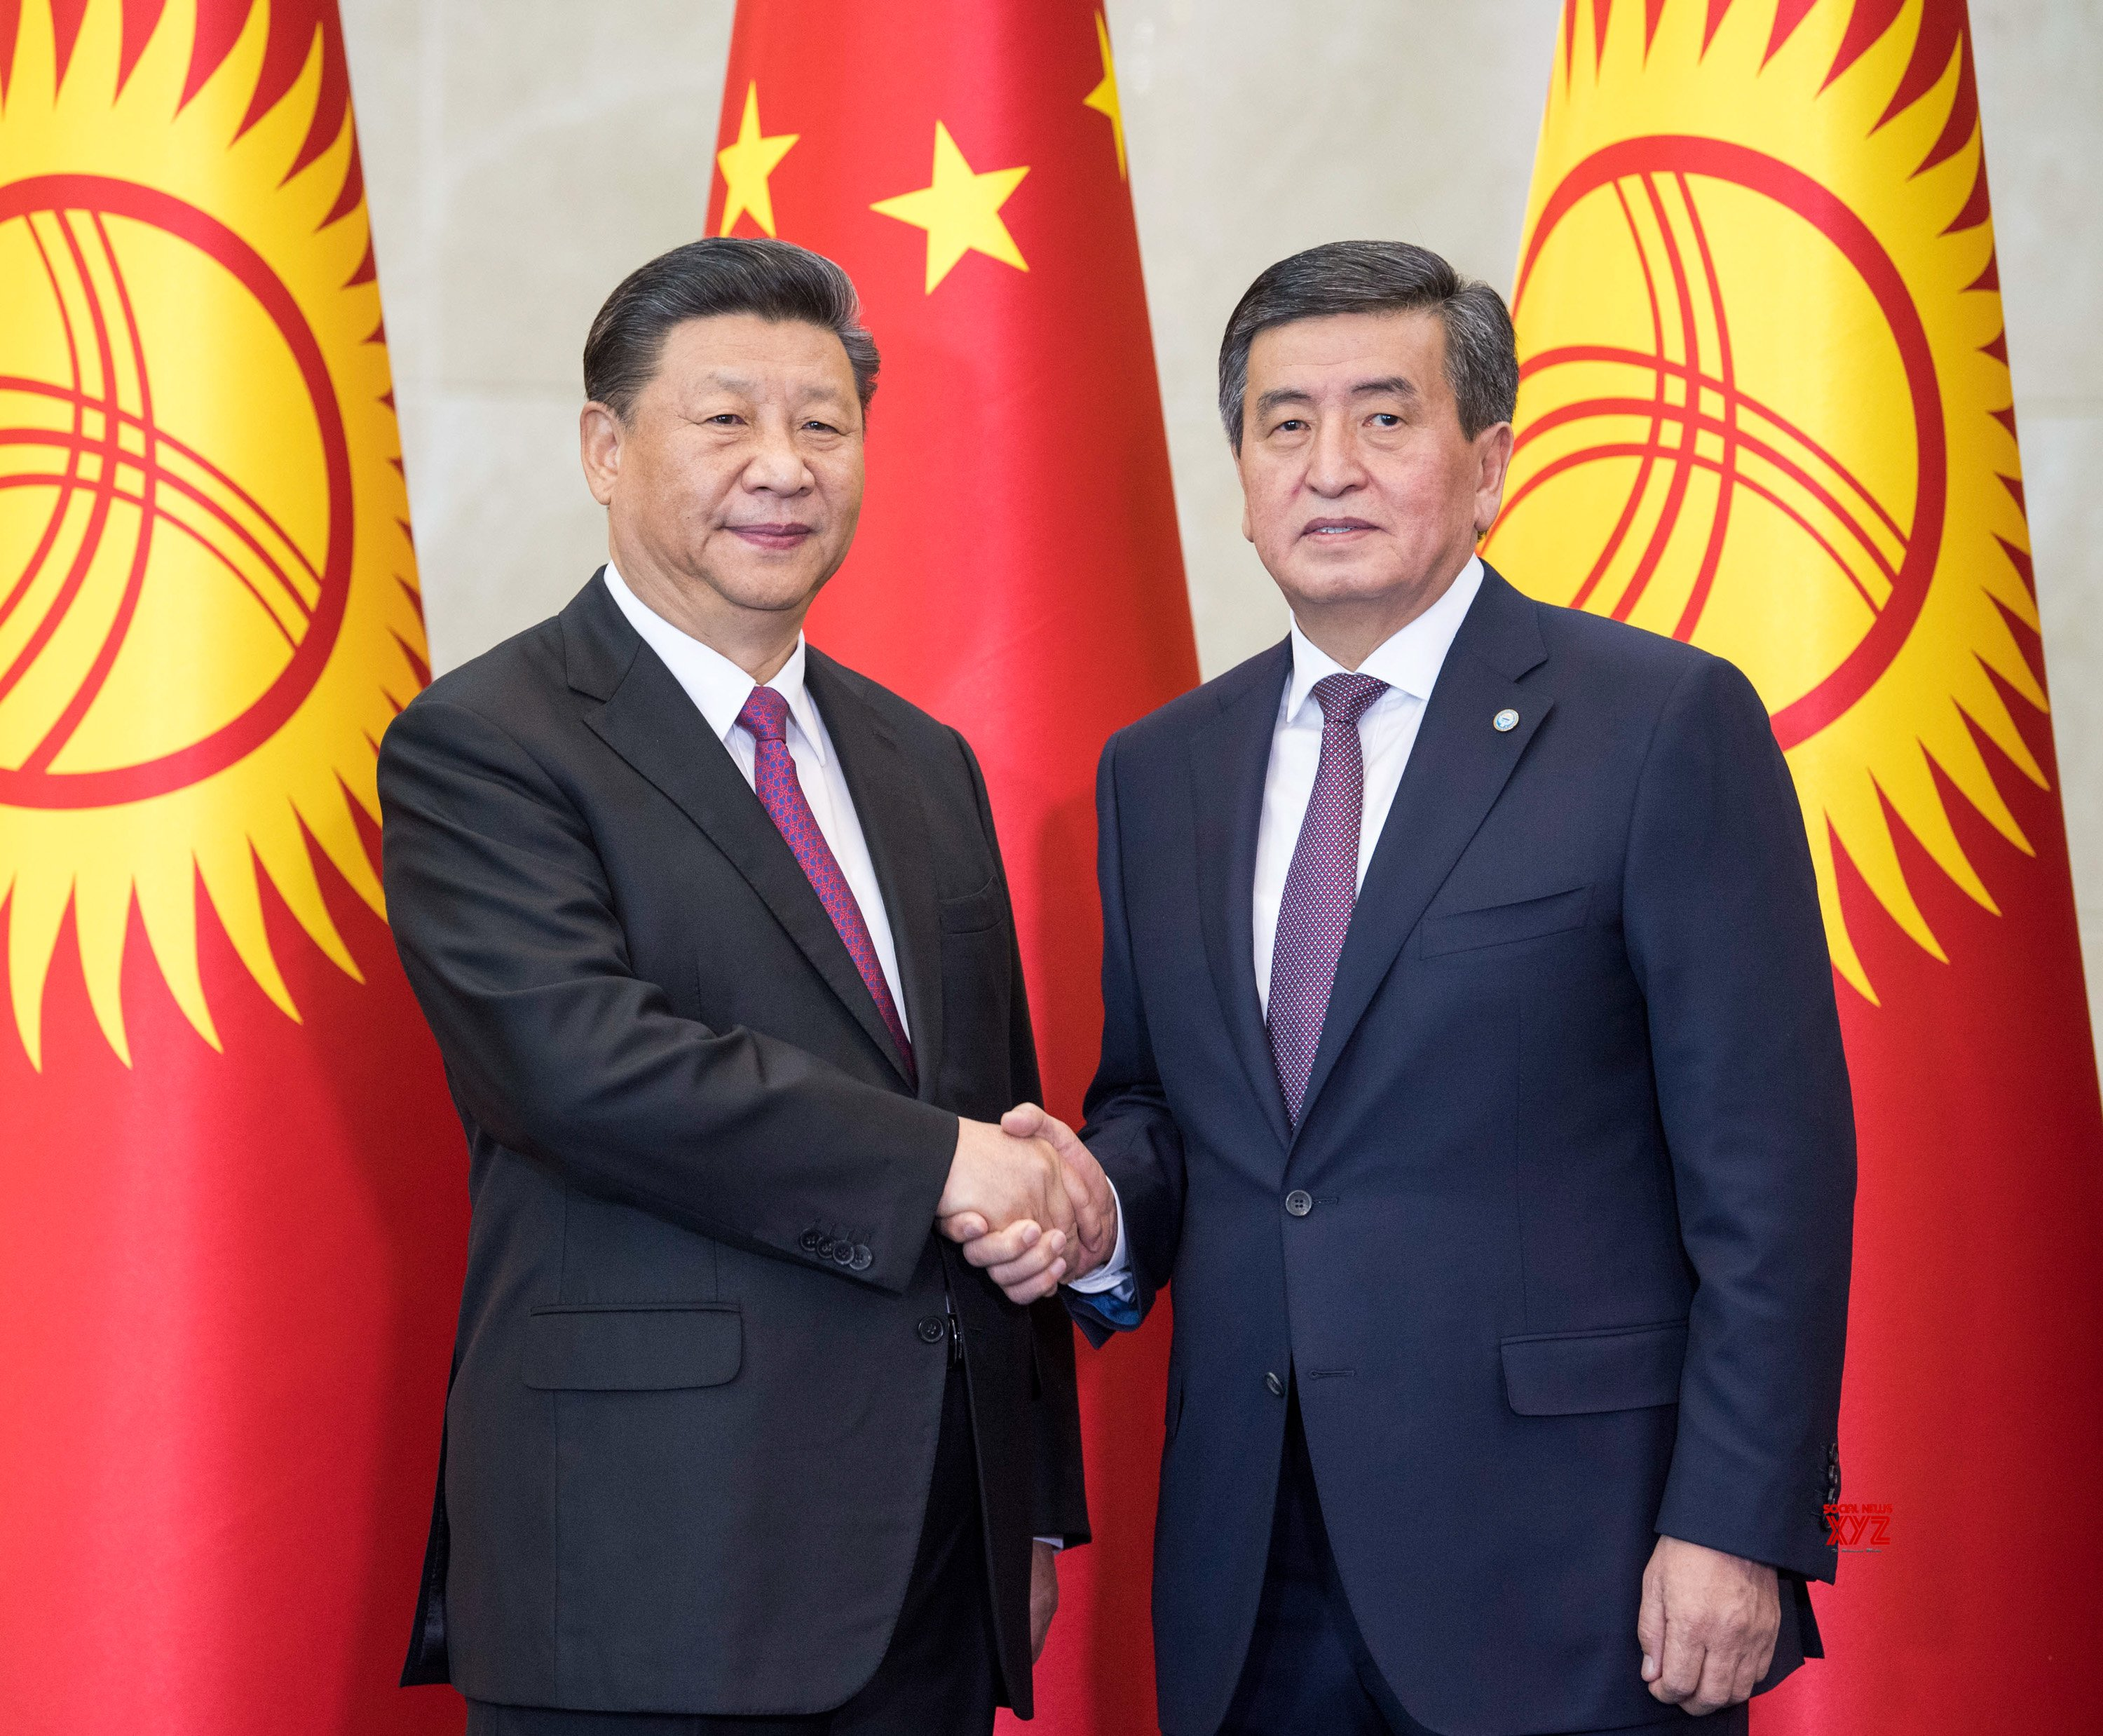 KYRGYZSTAN - BISHKEK - CHINA - PRESIDENTS - TALKS #Gallery